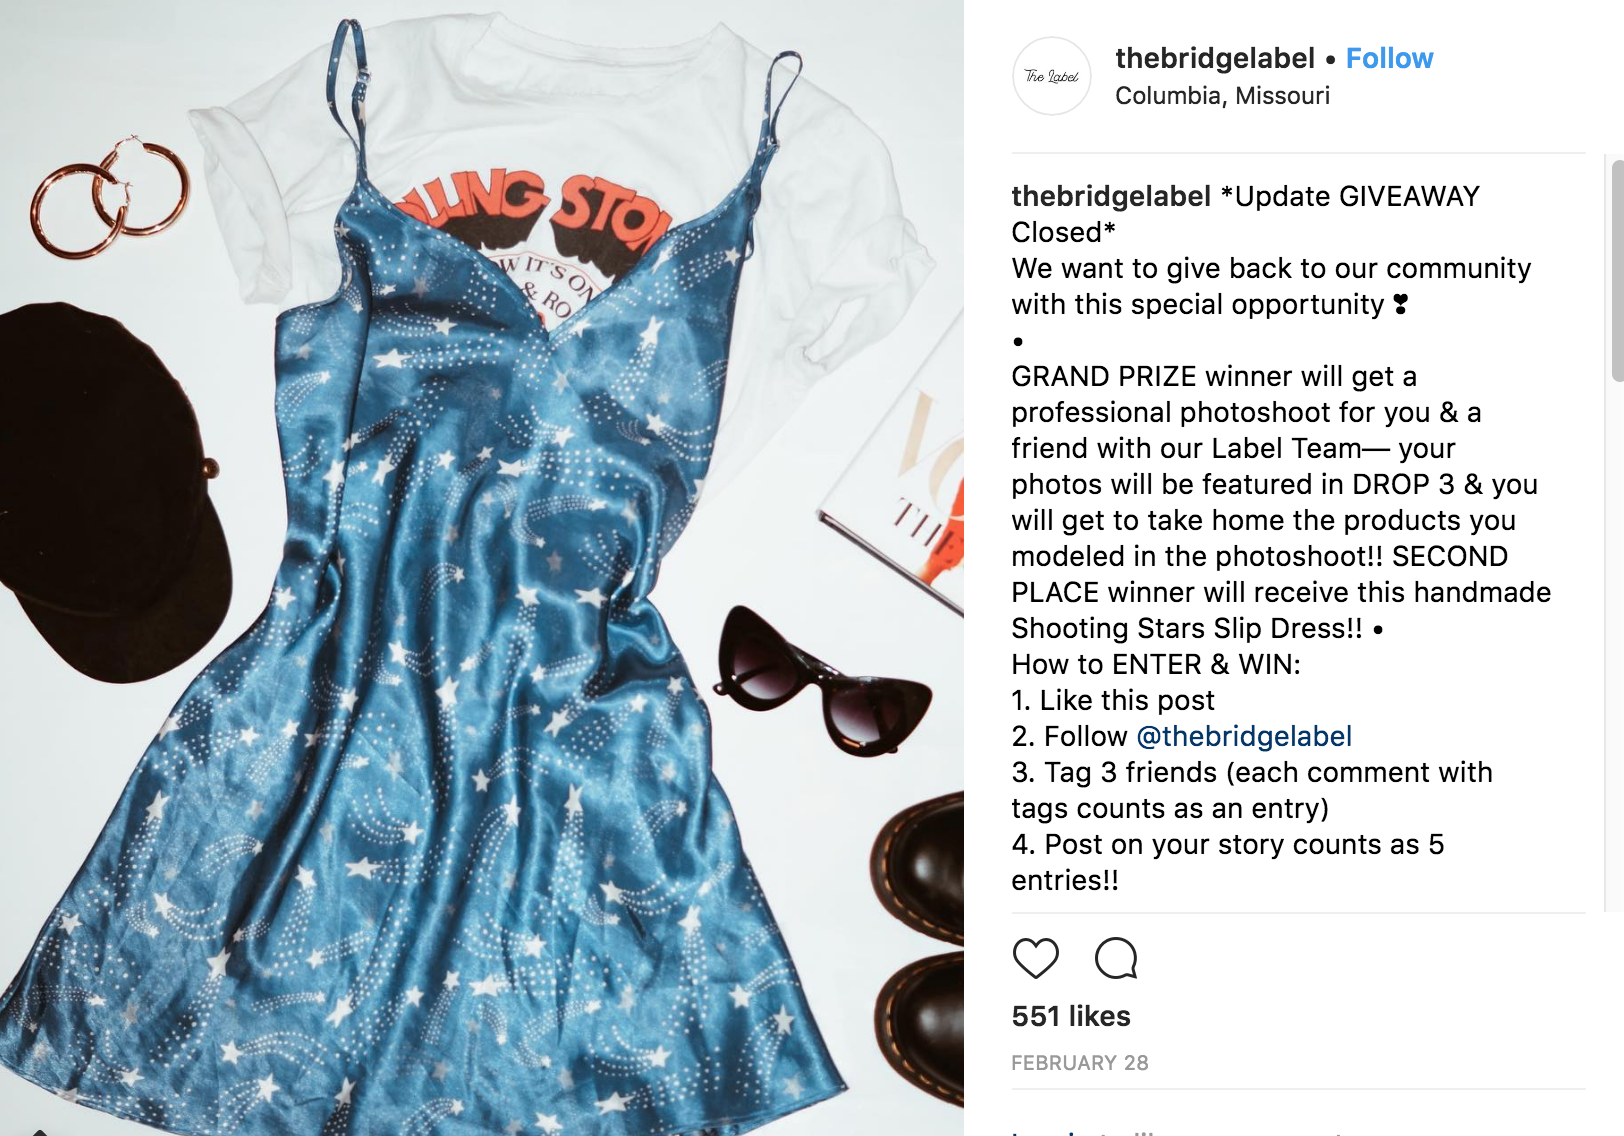 INSTAGRAM - CASE STUDY: COMMUNITY GIVEAWAYCLIENT: THE LABELOBJECTIVE: CREATE USER GENERATED HYPE AROUND THEIR NEXT PRODUCT RELEASE BY OFFERING A FREE OUTFIT AND PHOTOSHOOT WITH THE LABEL CREATIVE TEAM.